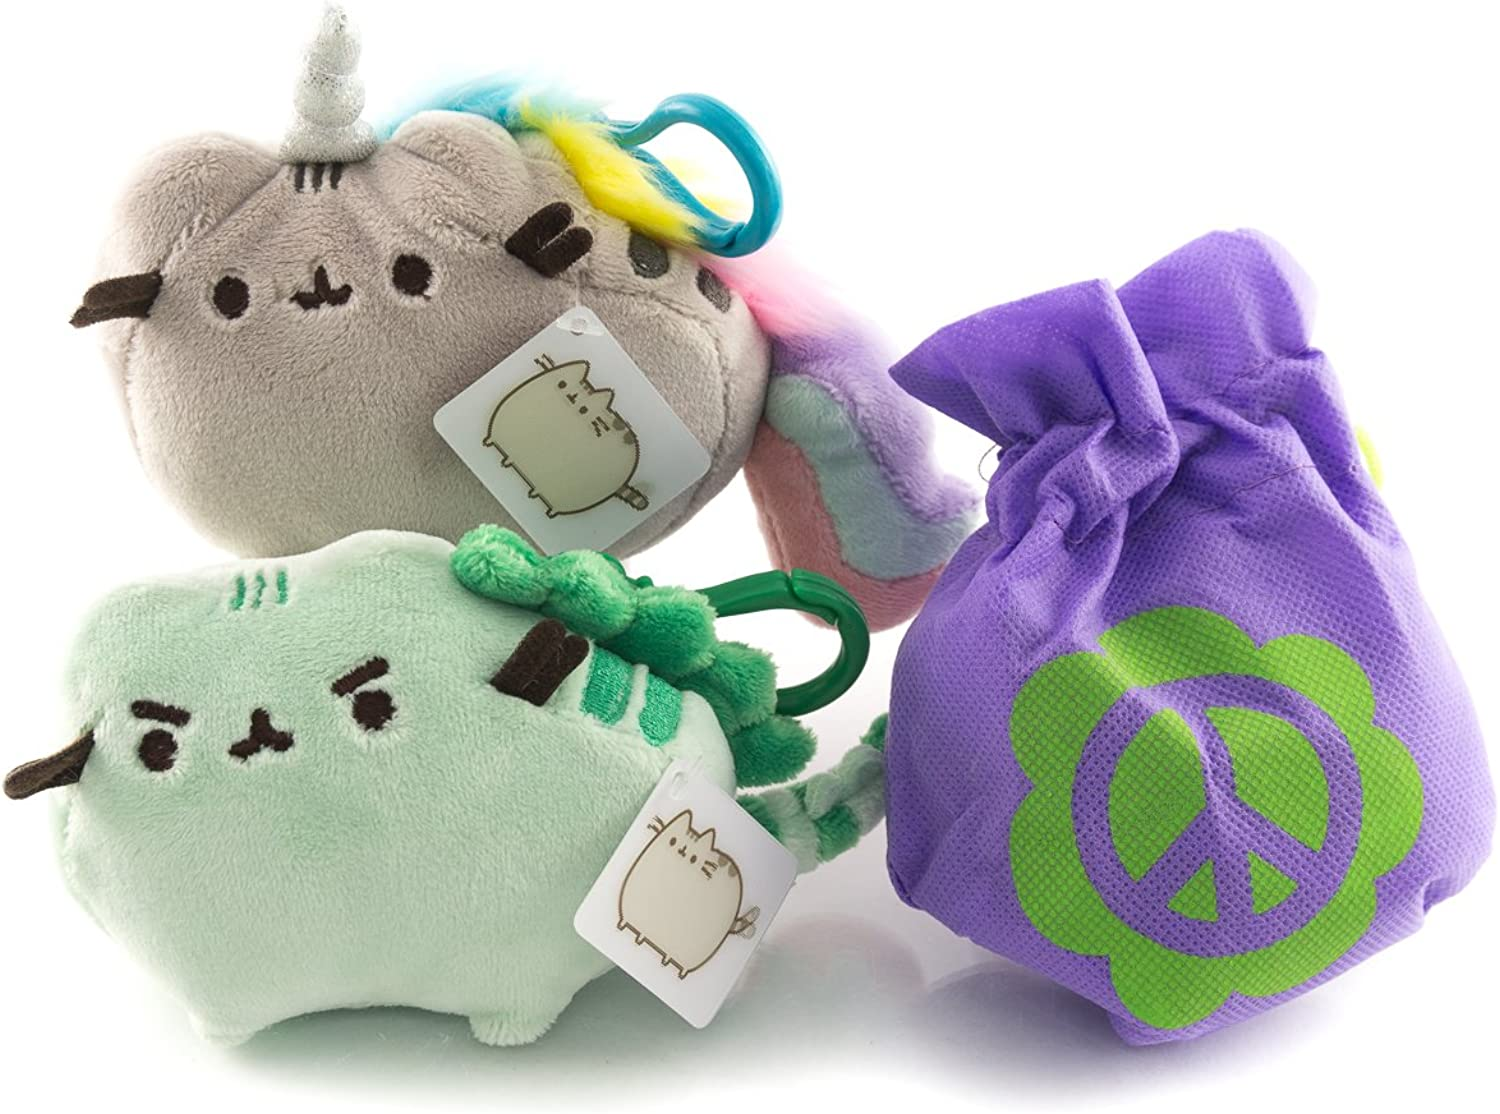 "Pusheen Pusheenicorn and Pusheenosaurus   Plush Pusheenicorn Backpack Clip and Pusheenosaurus Backpack Clip Gift Combo   4.5"" Pusheen Plush Backpack Clips with Tote   Reusable Non-Woven Tote Bag"